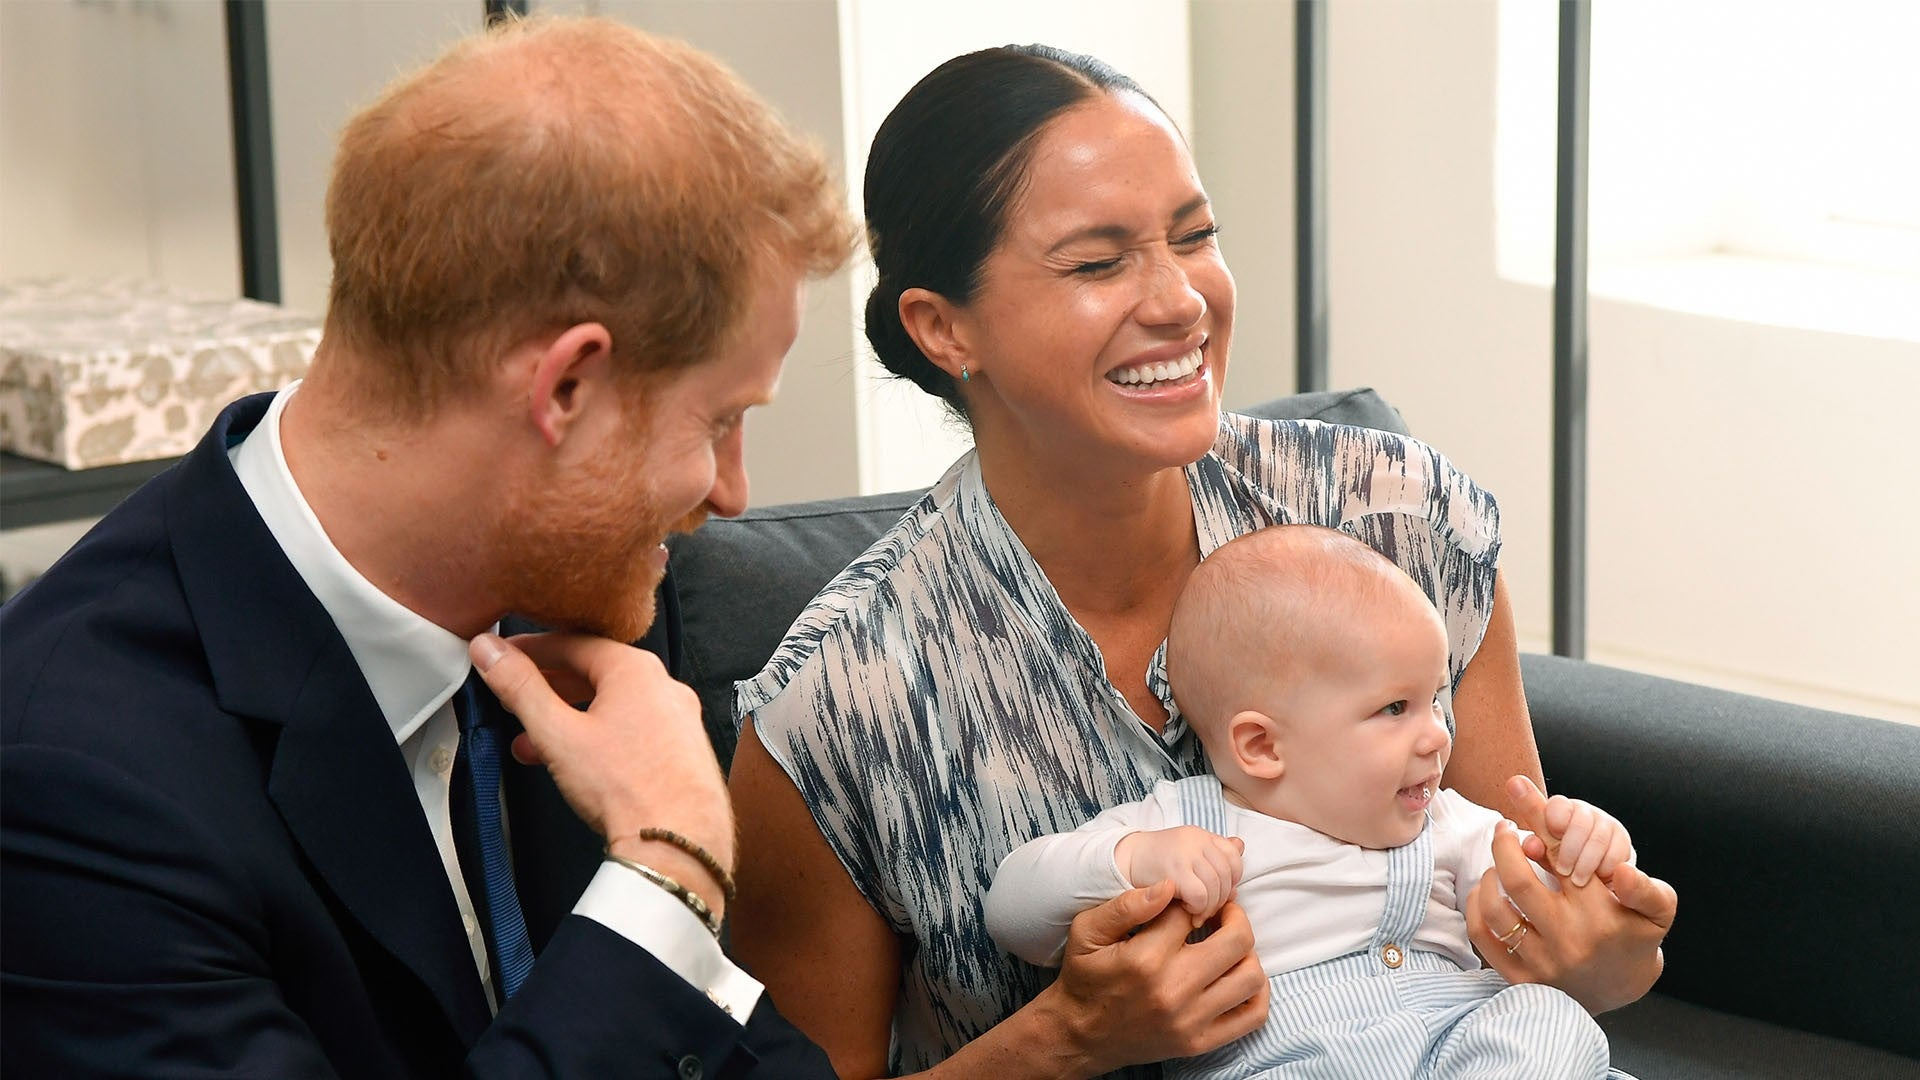 meghan markle on feminist husband prince harry setting a beautiful example for archie entertainment tonight meghan markle and prince harry s son archie turns 1 looking back at his cutest moments